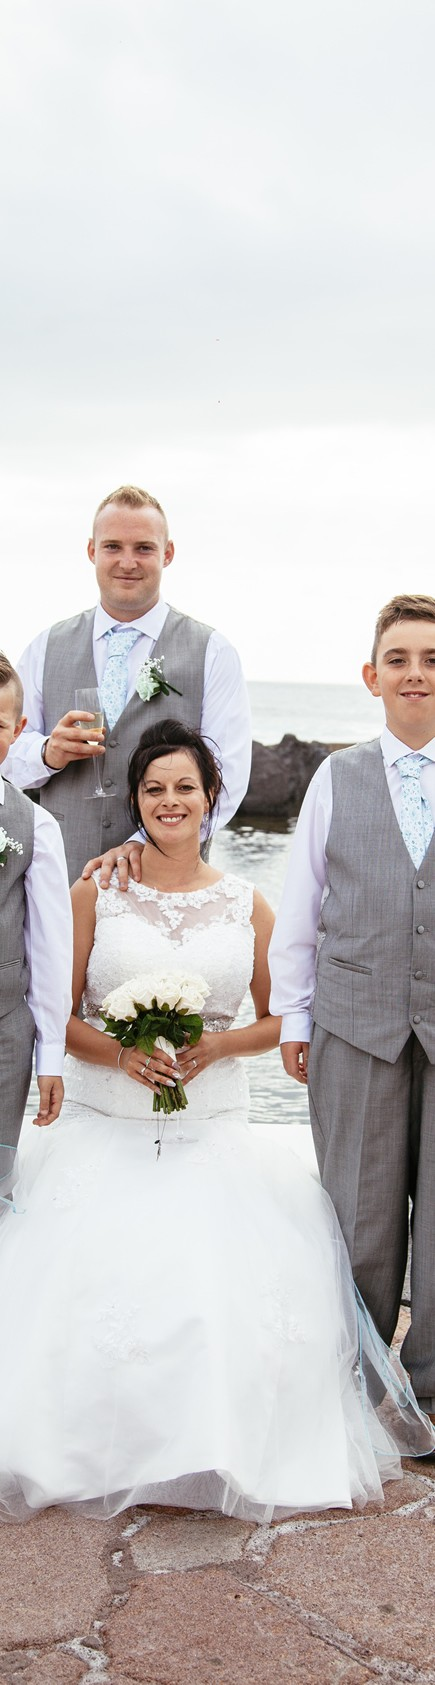 Wedding-Caroline-and-James-in-tenerife-myperfectwedding0336